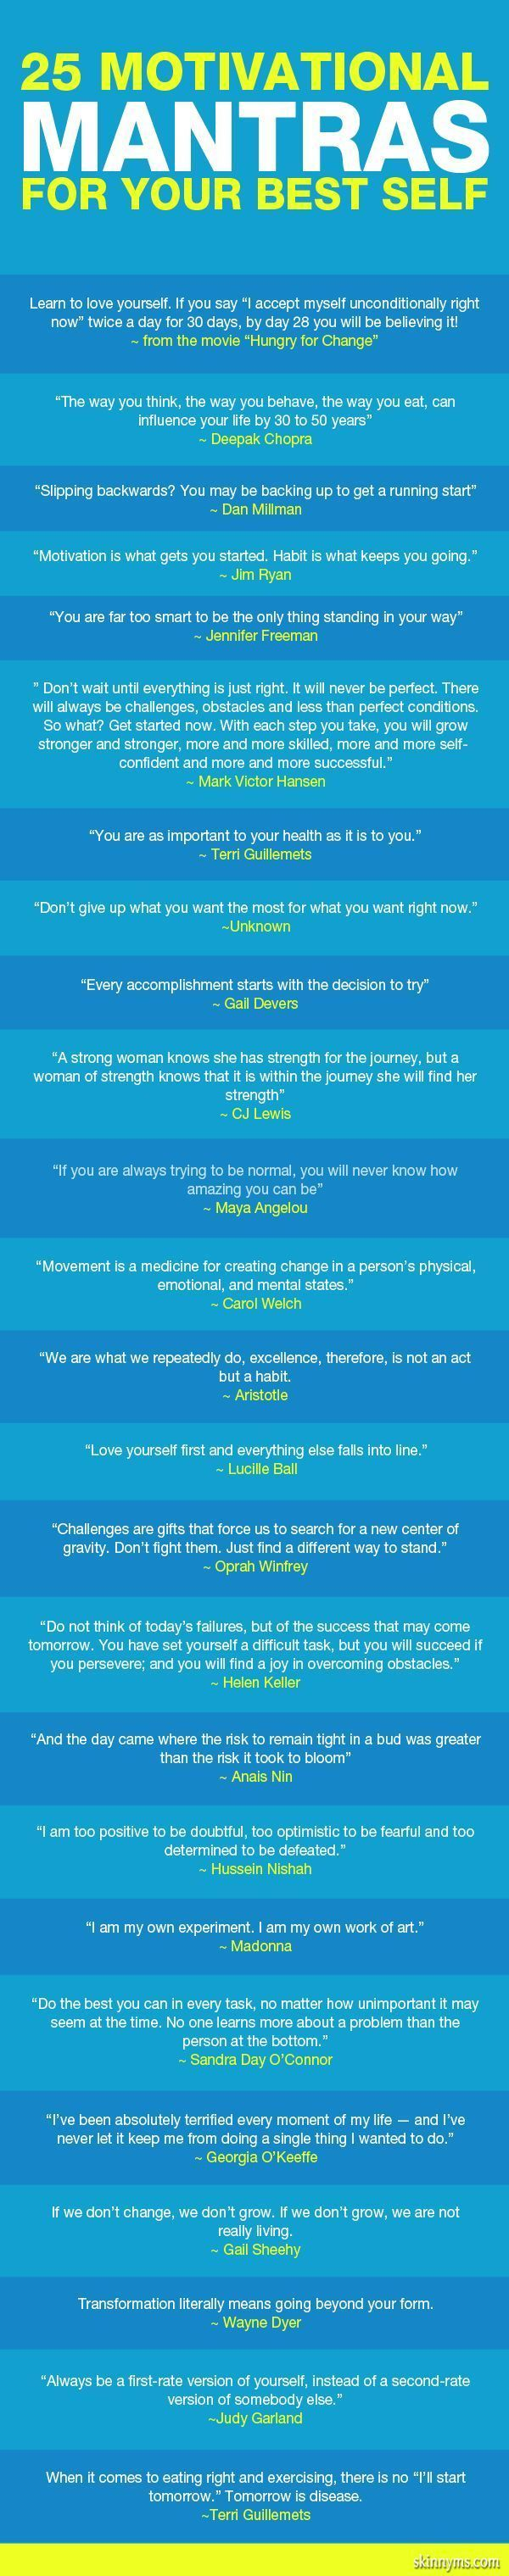 Quotes that Will Motivate